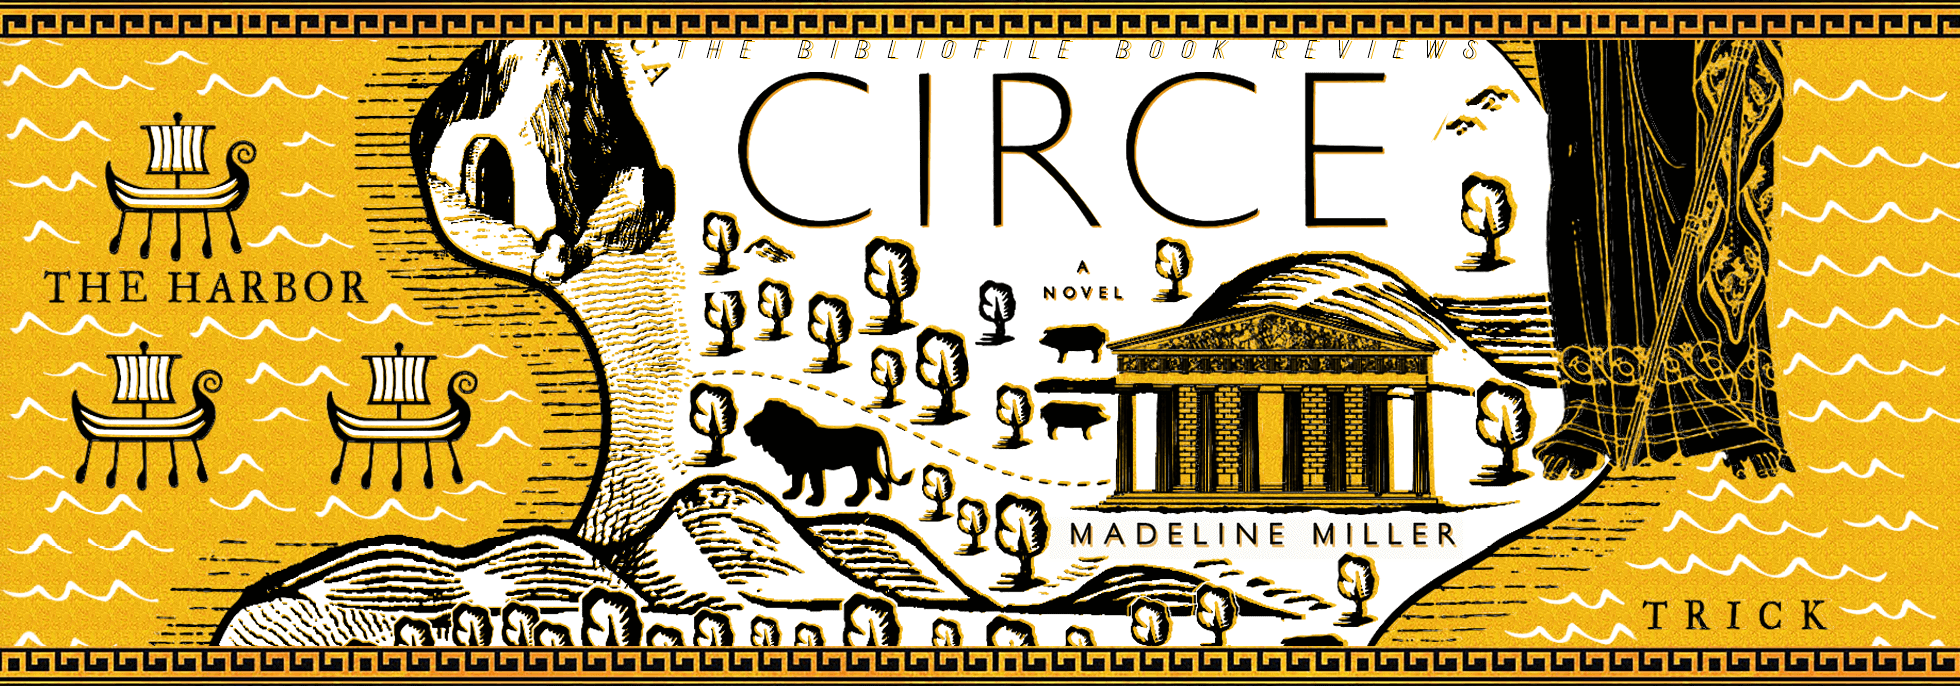 circe madeline miller book review book summary synopsis spoilers plot details